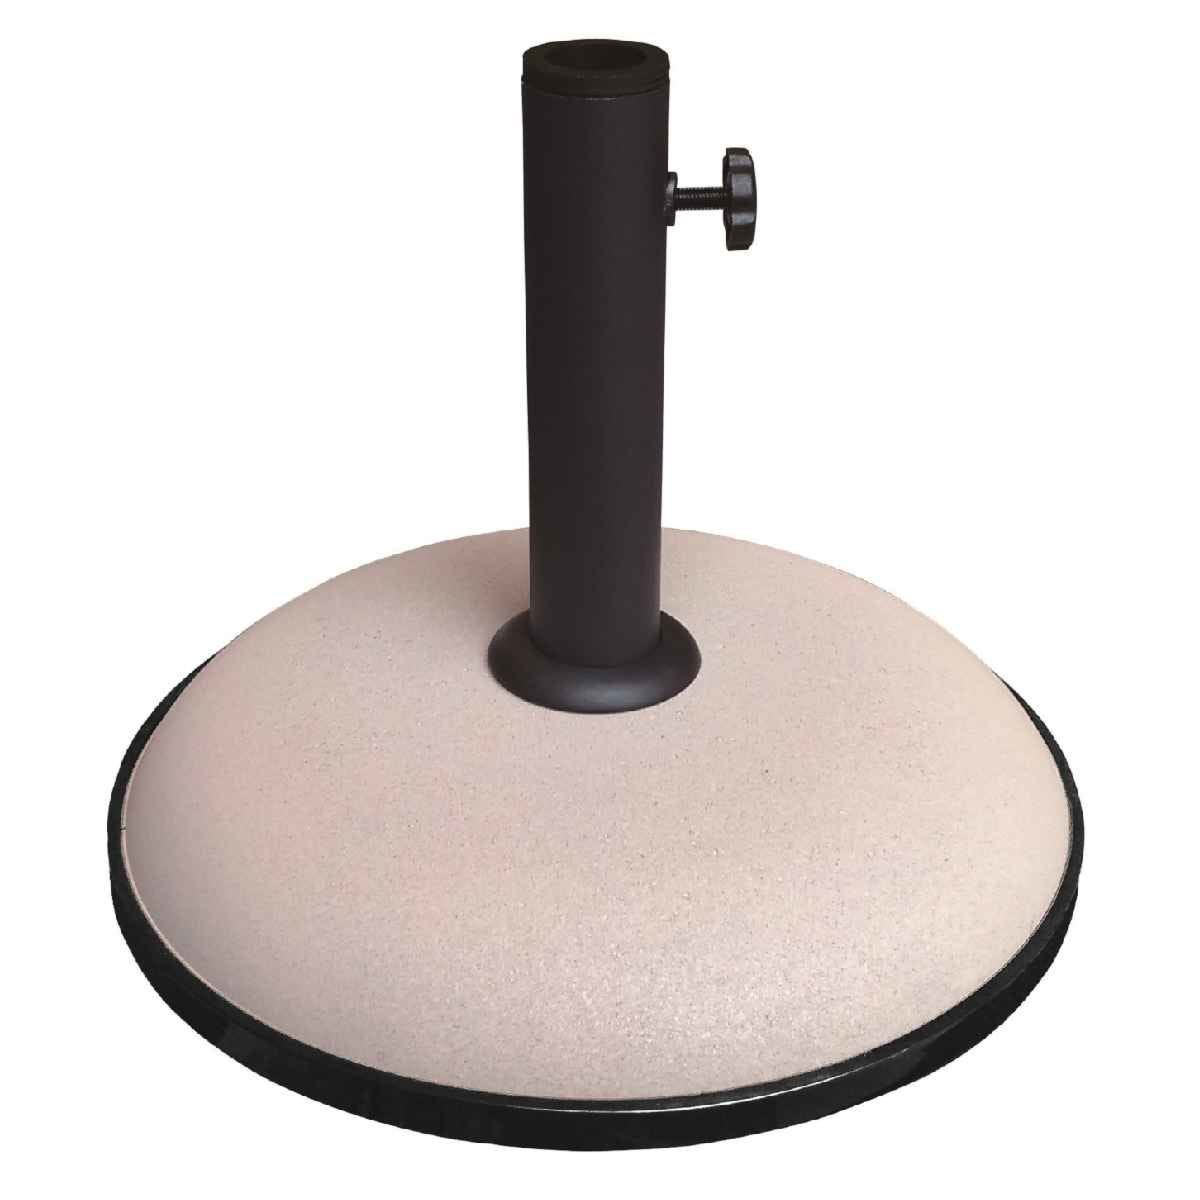 Garden Must Haves 15kg Concrete Base - Taupe